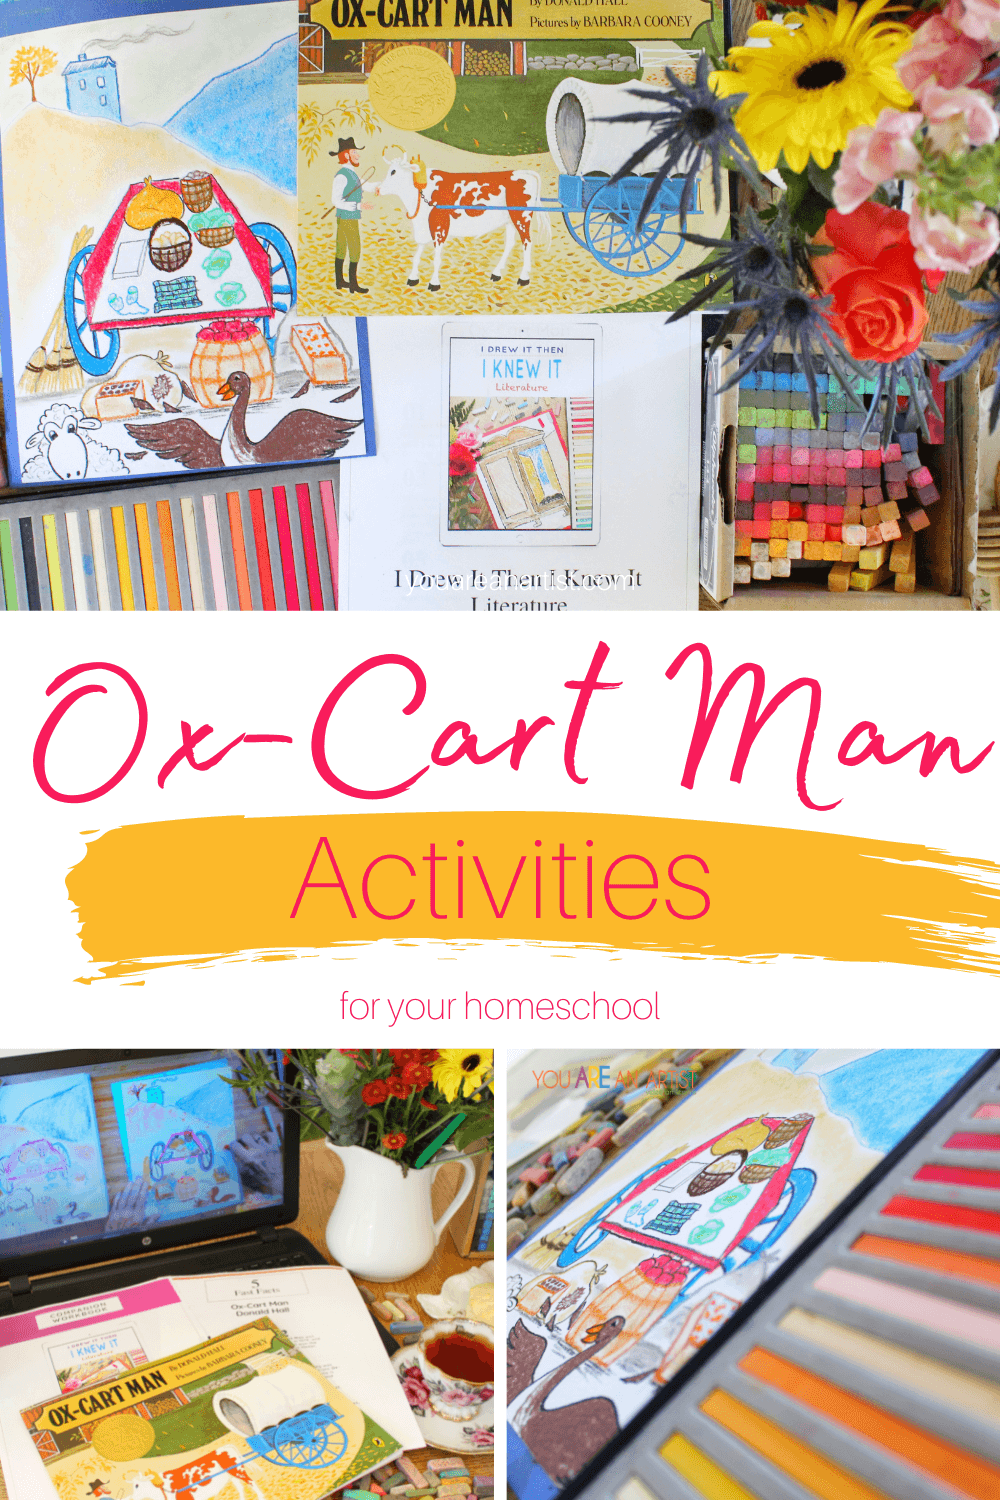 Ox-Cart Man Activities For Your Homeschool: Take a trip back to the 1800s with a New England farmer in the Ox-Cart Man. In a time when you wove your own clothes, whittled your own broom, and split your own shingles, this lyrical story takes you on a journey through the changing seasons. These activities are sure to bring the Ox-Cart Man to life! #chalkpastels #YouAREAnArtist #OxCartMan #OxCartManActivities #videoartlessons #homeschool #changingseasons #chalkpastelteatime